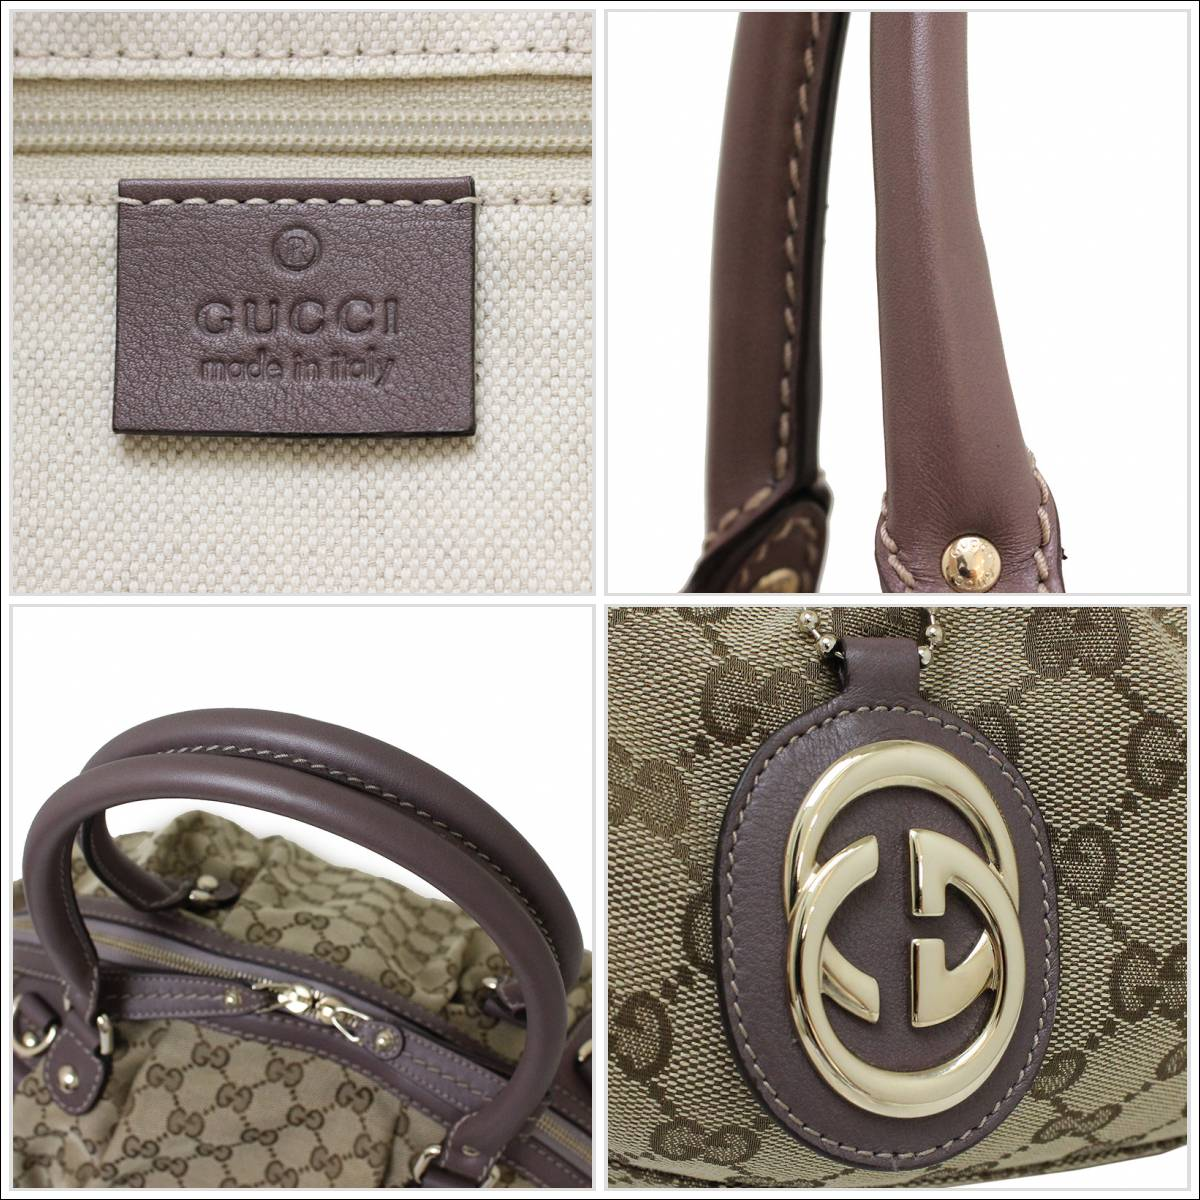 100737e6450a BrandCity: Gucci GG canvas Sioux key 2WAY Boston bag 223974 ...